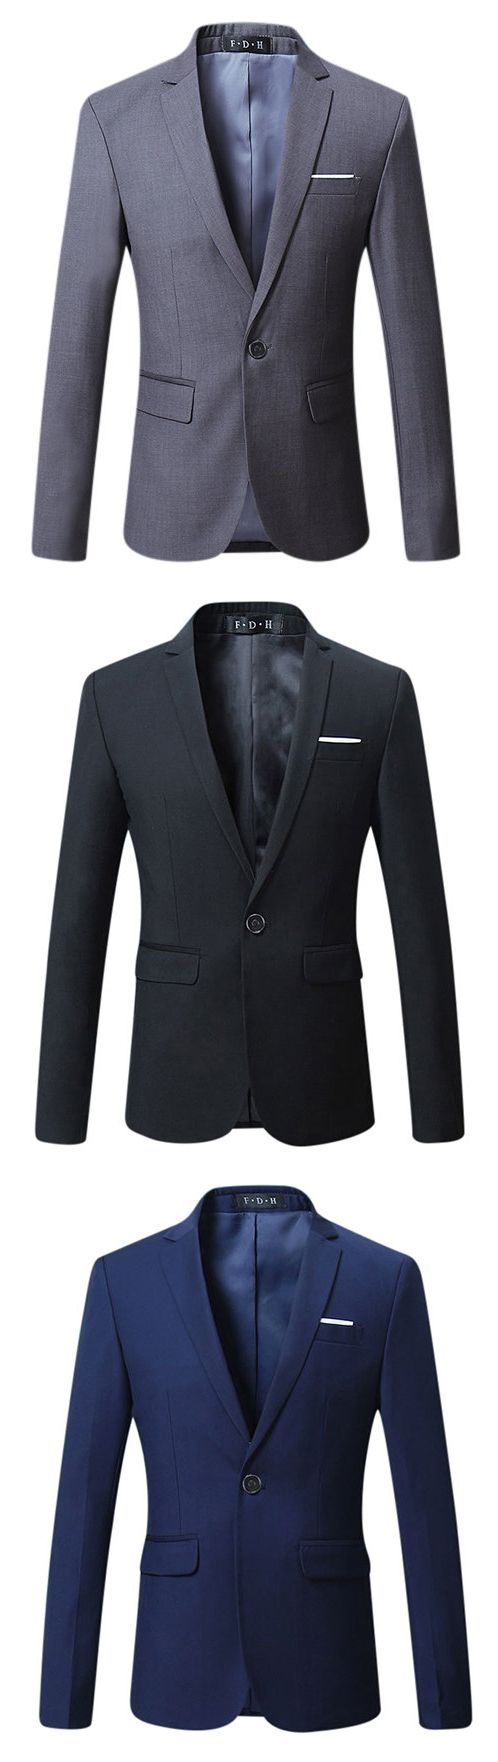 Spring Autumn Casual Business Suits Slim Fit Fashion Solid Color Blazers for Men